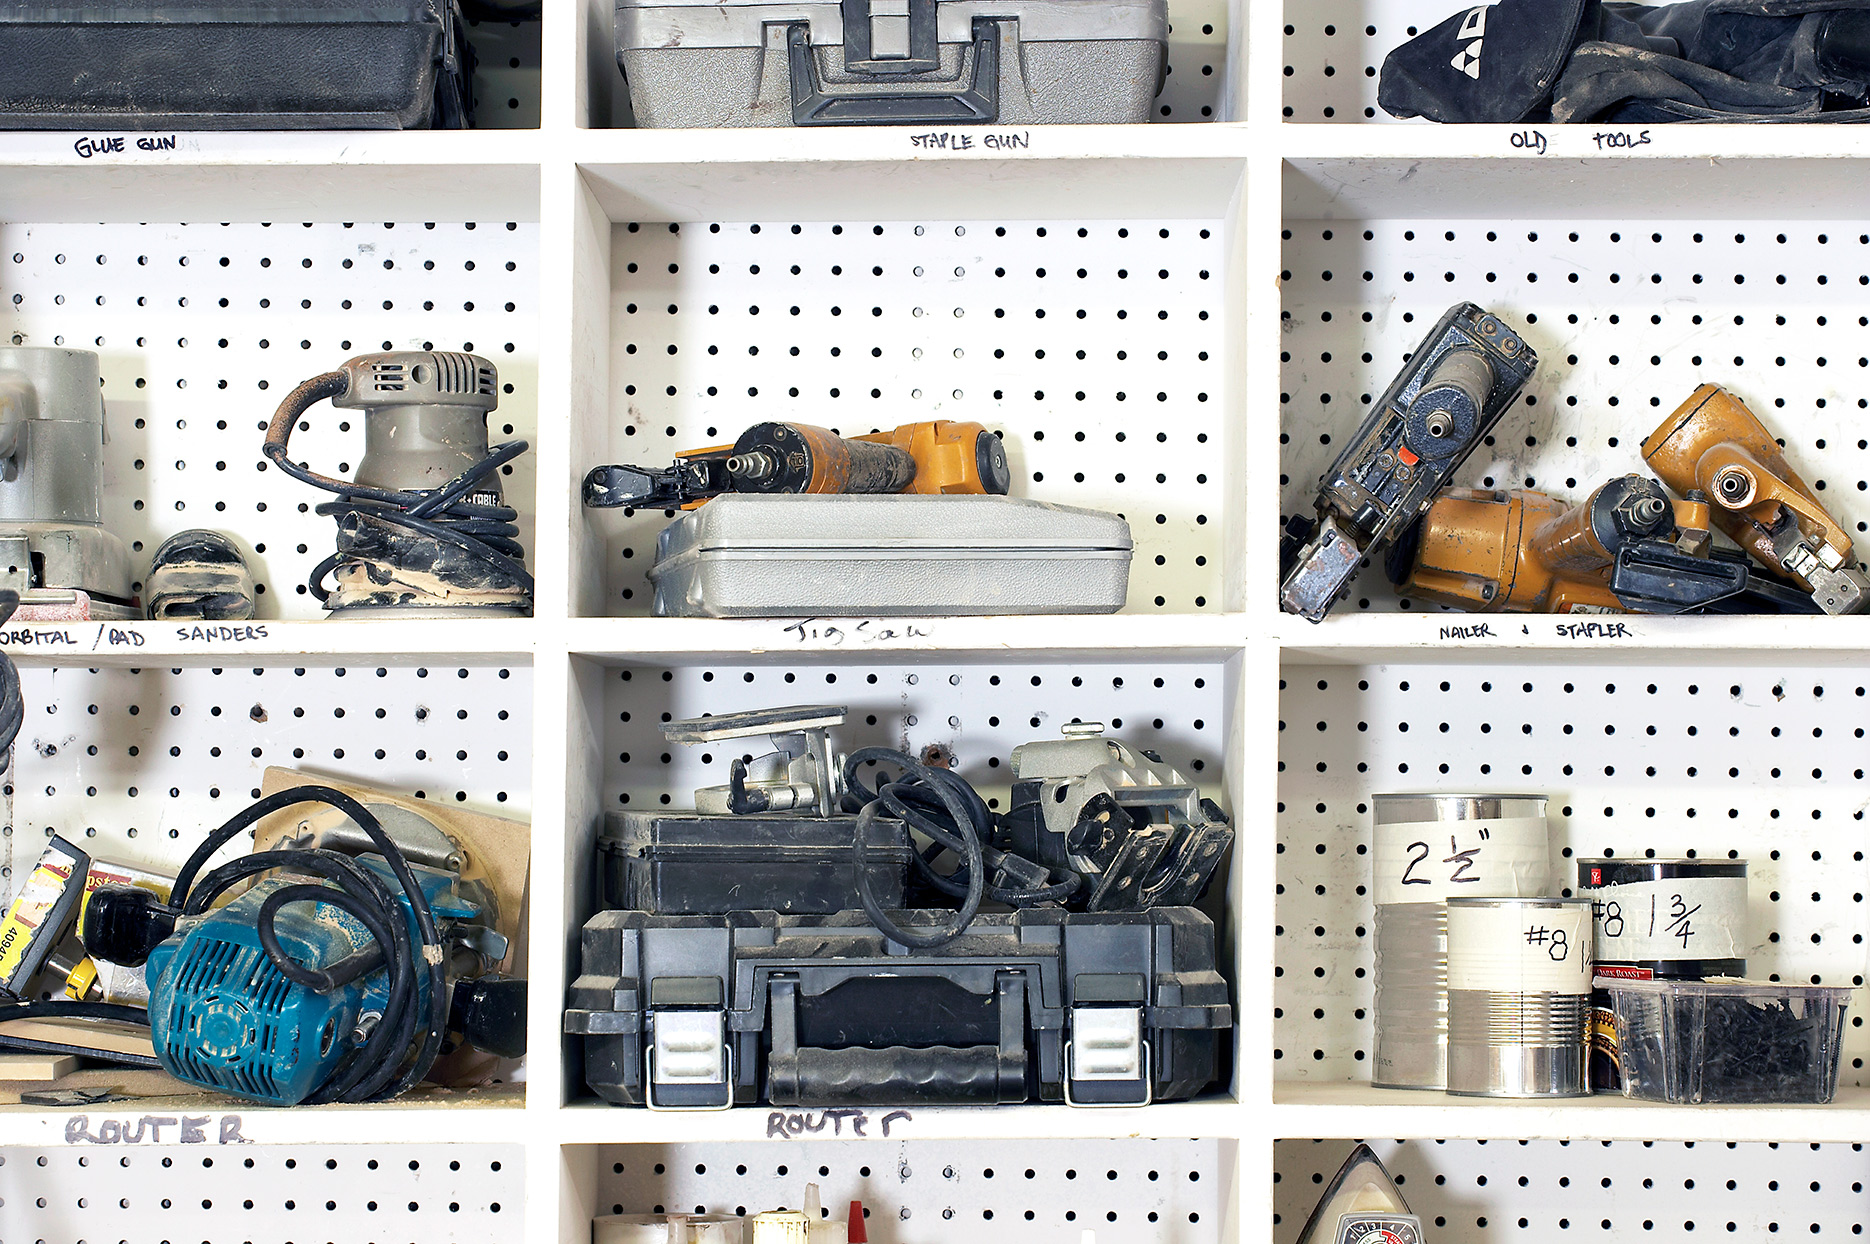 tools on peg board shelving in a tool lending library